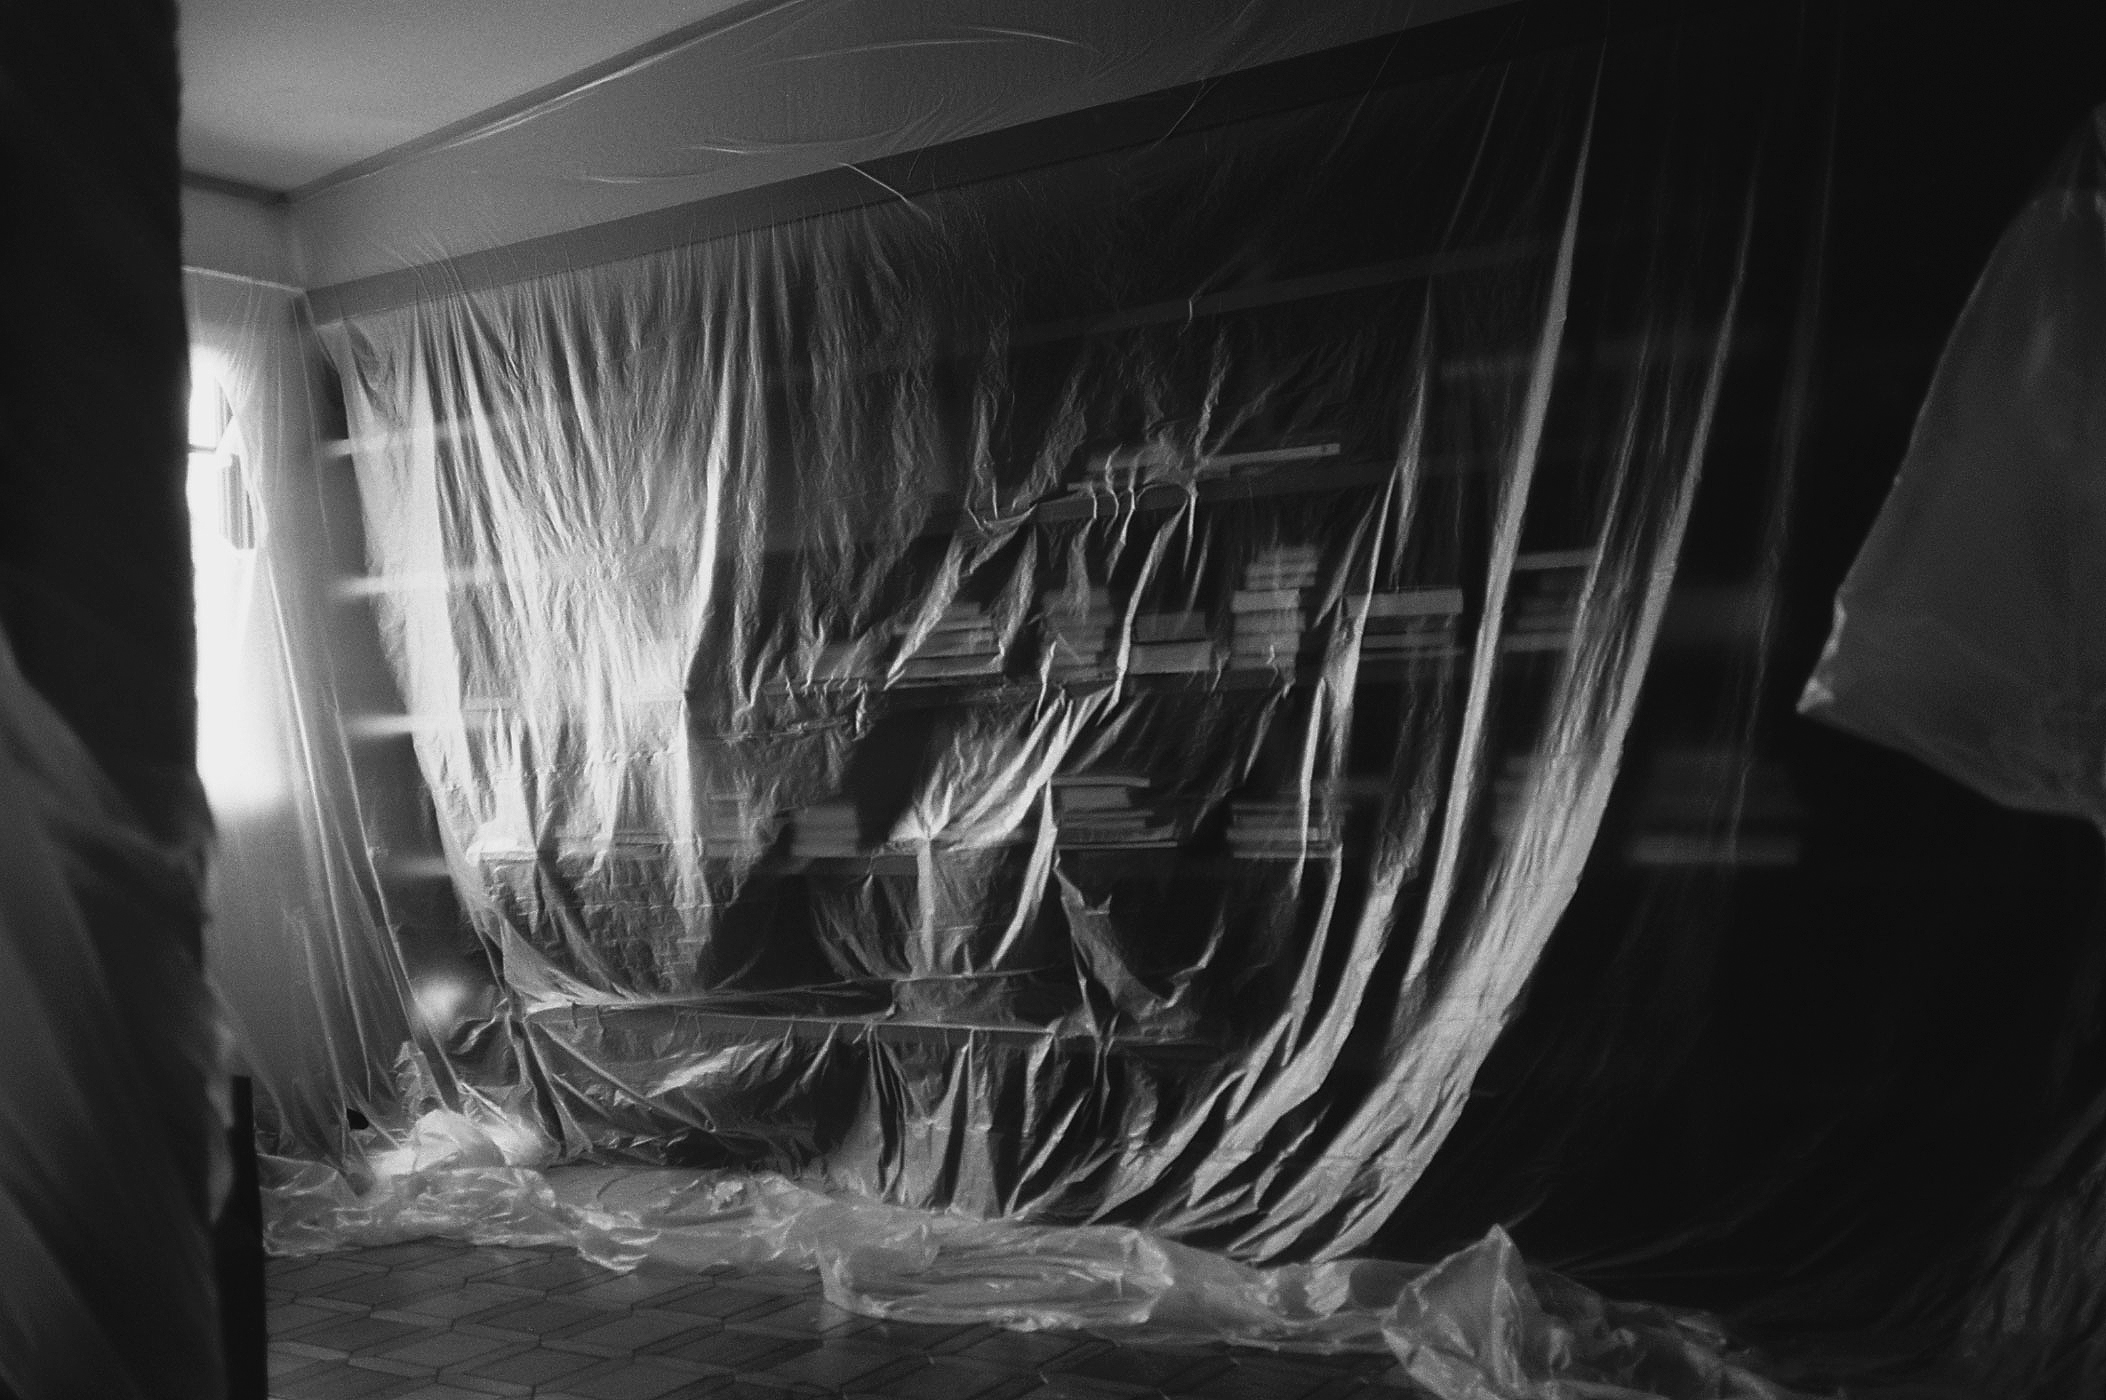 RoomWrapped-20.54.2015.jpg